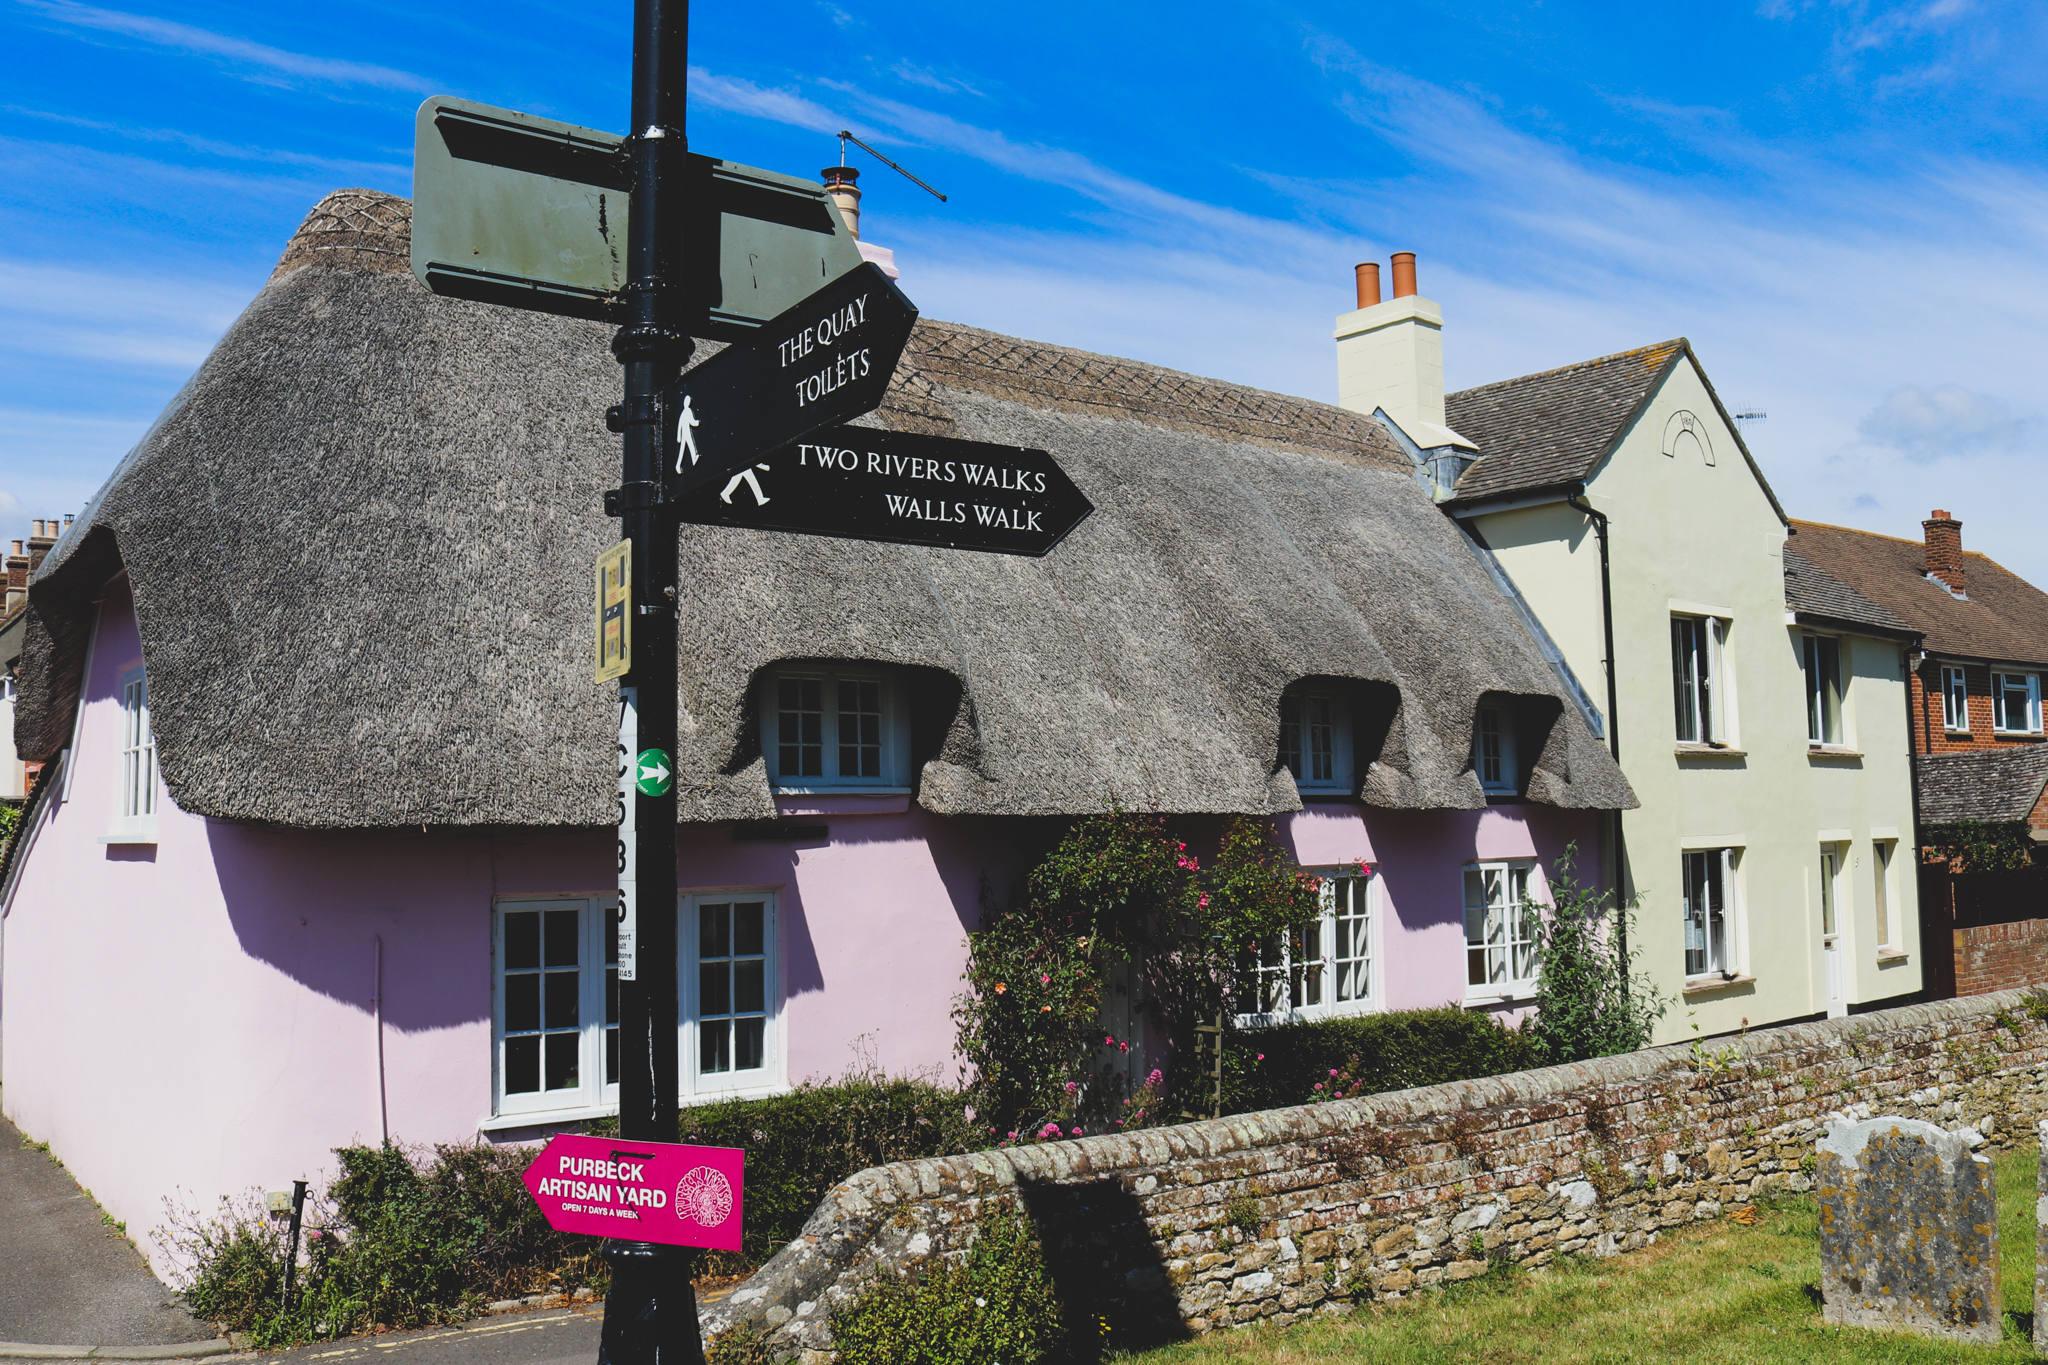 Pink thatched cottage and road signs in Wareham